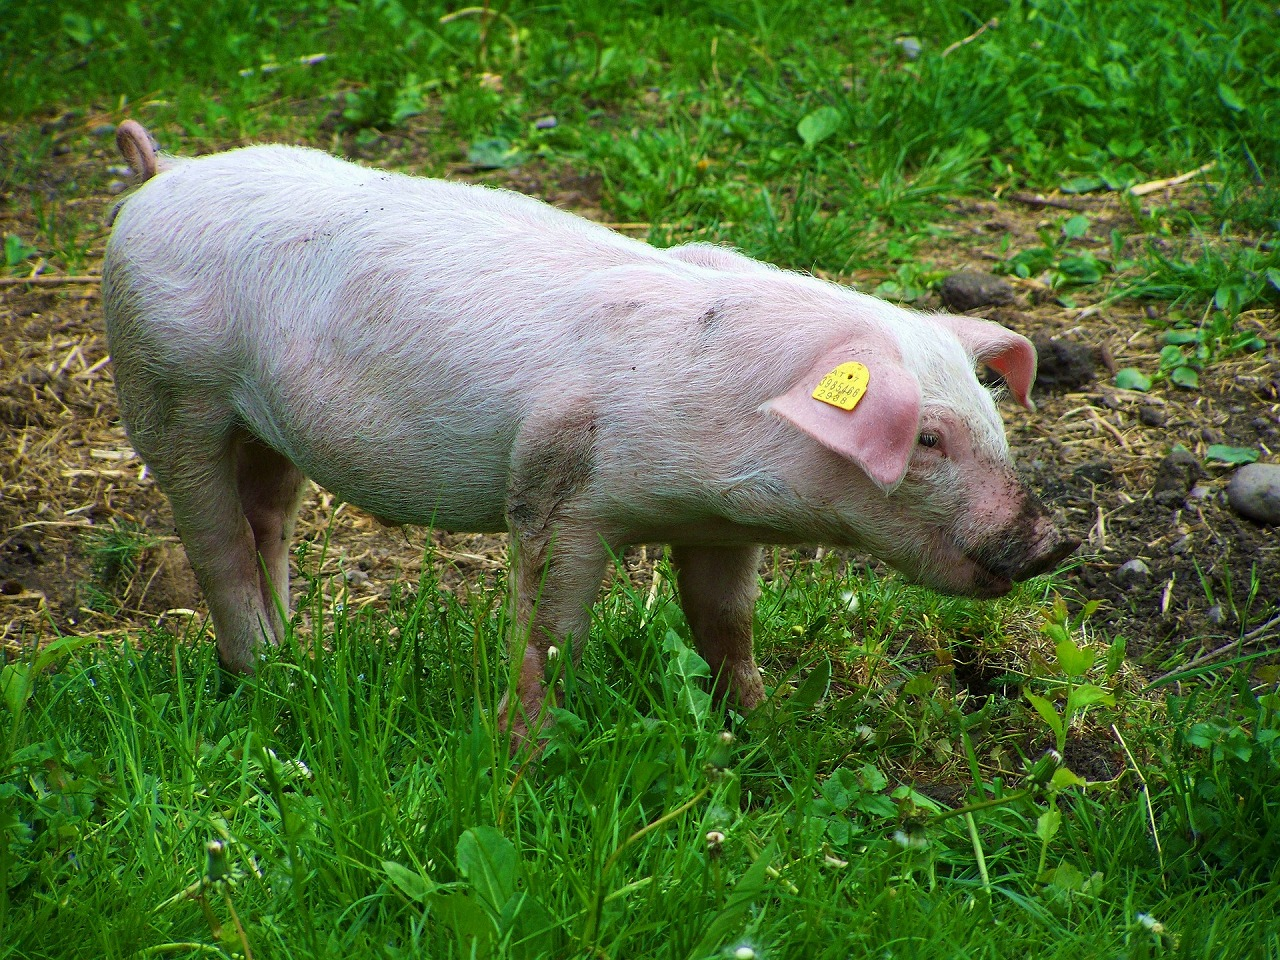 little-piglets-767476_1920